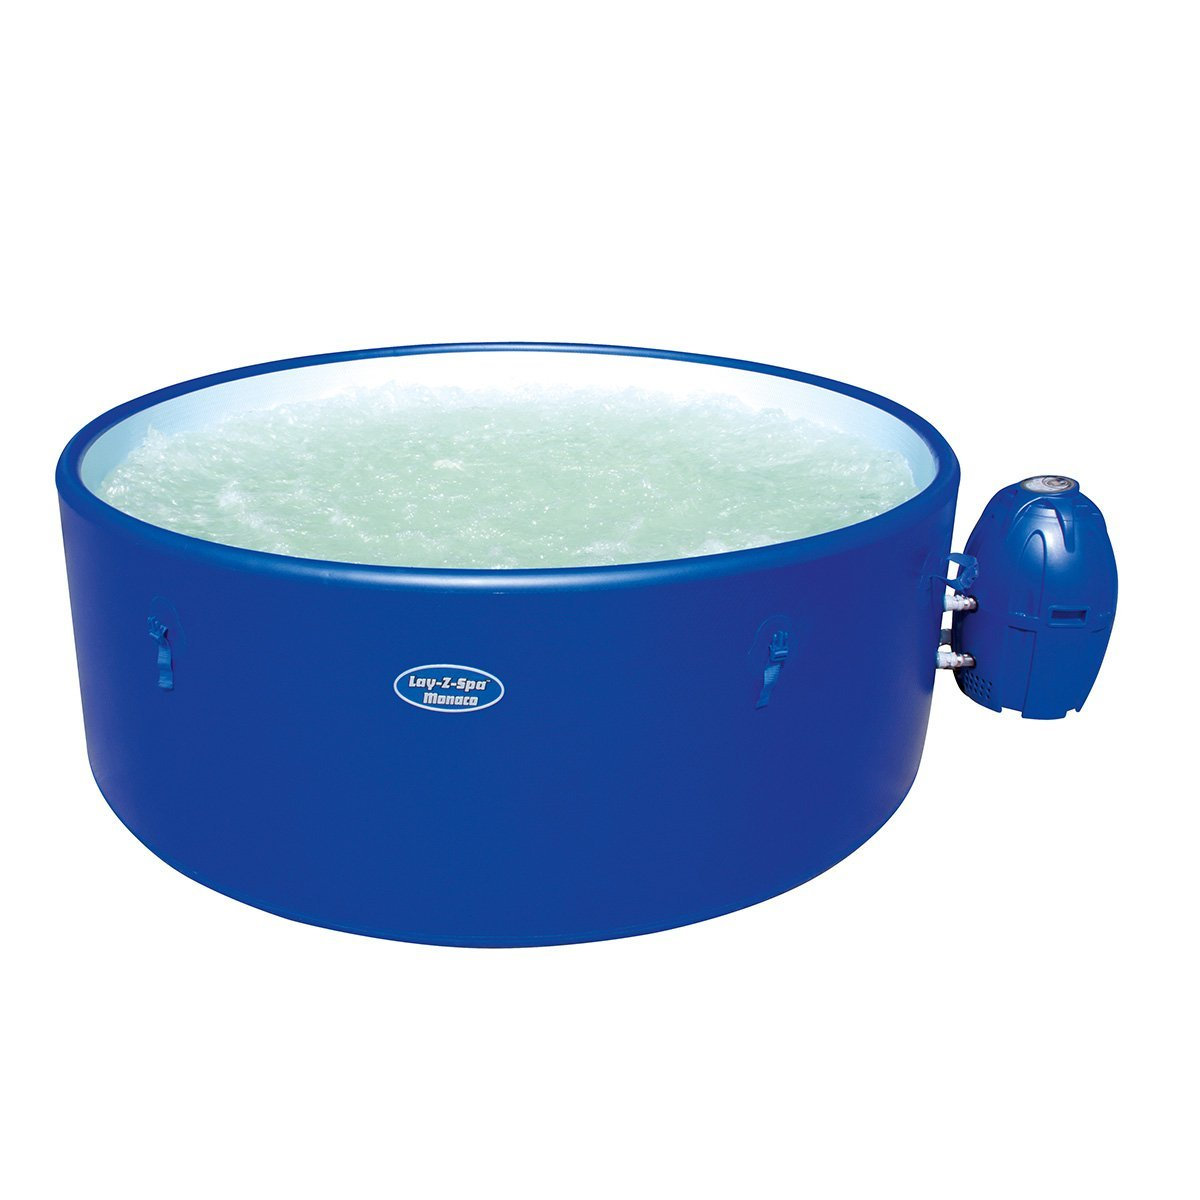 Lay-Z-Spa Monaco Inflatable Hot Tub